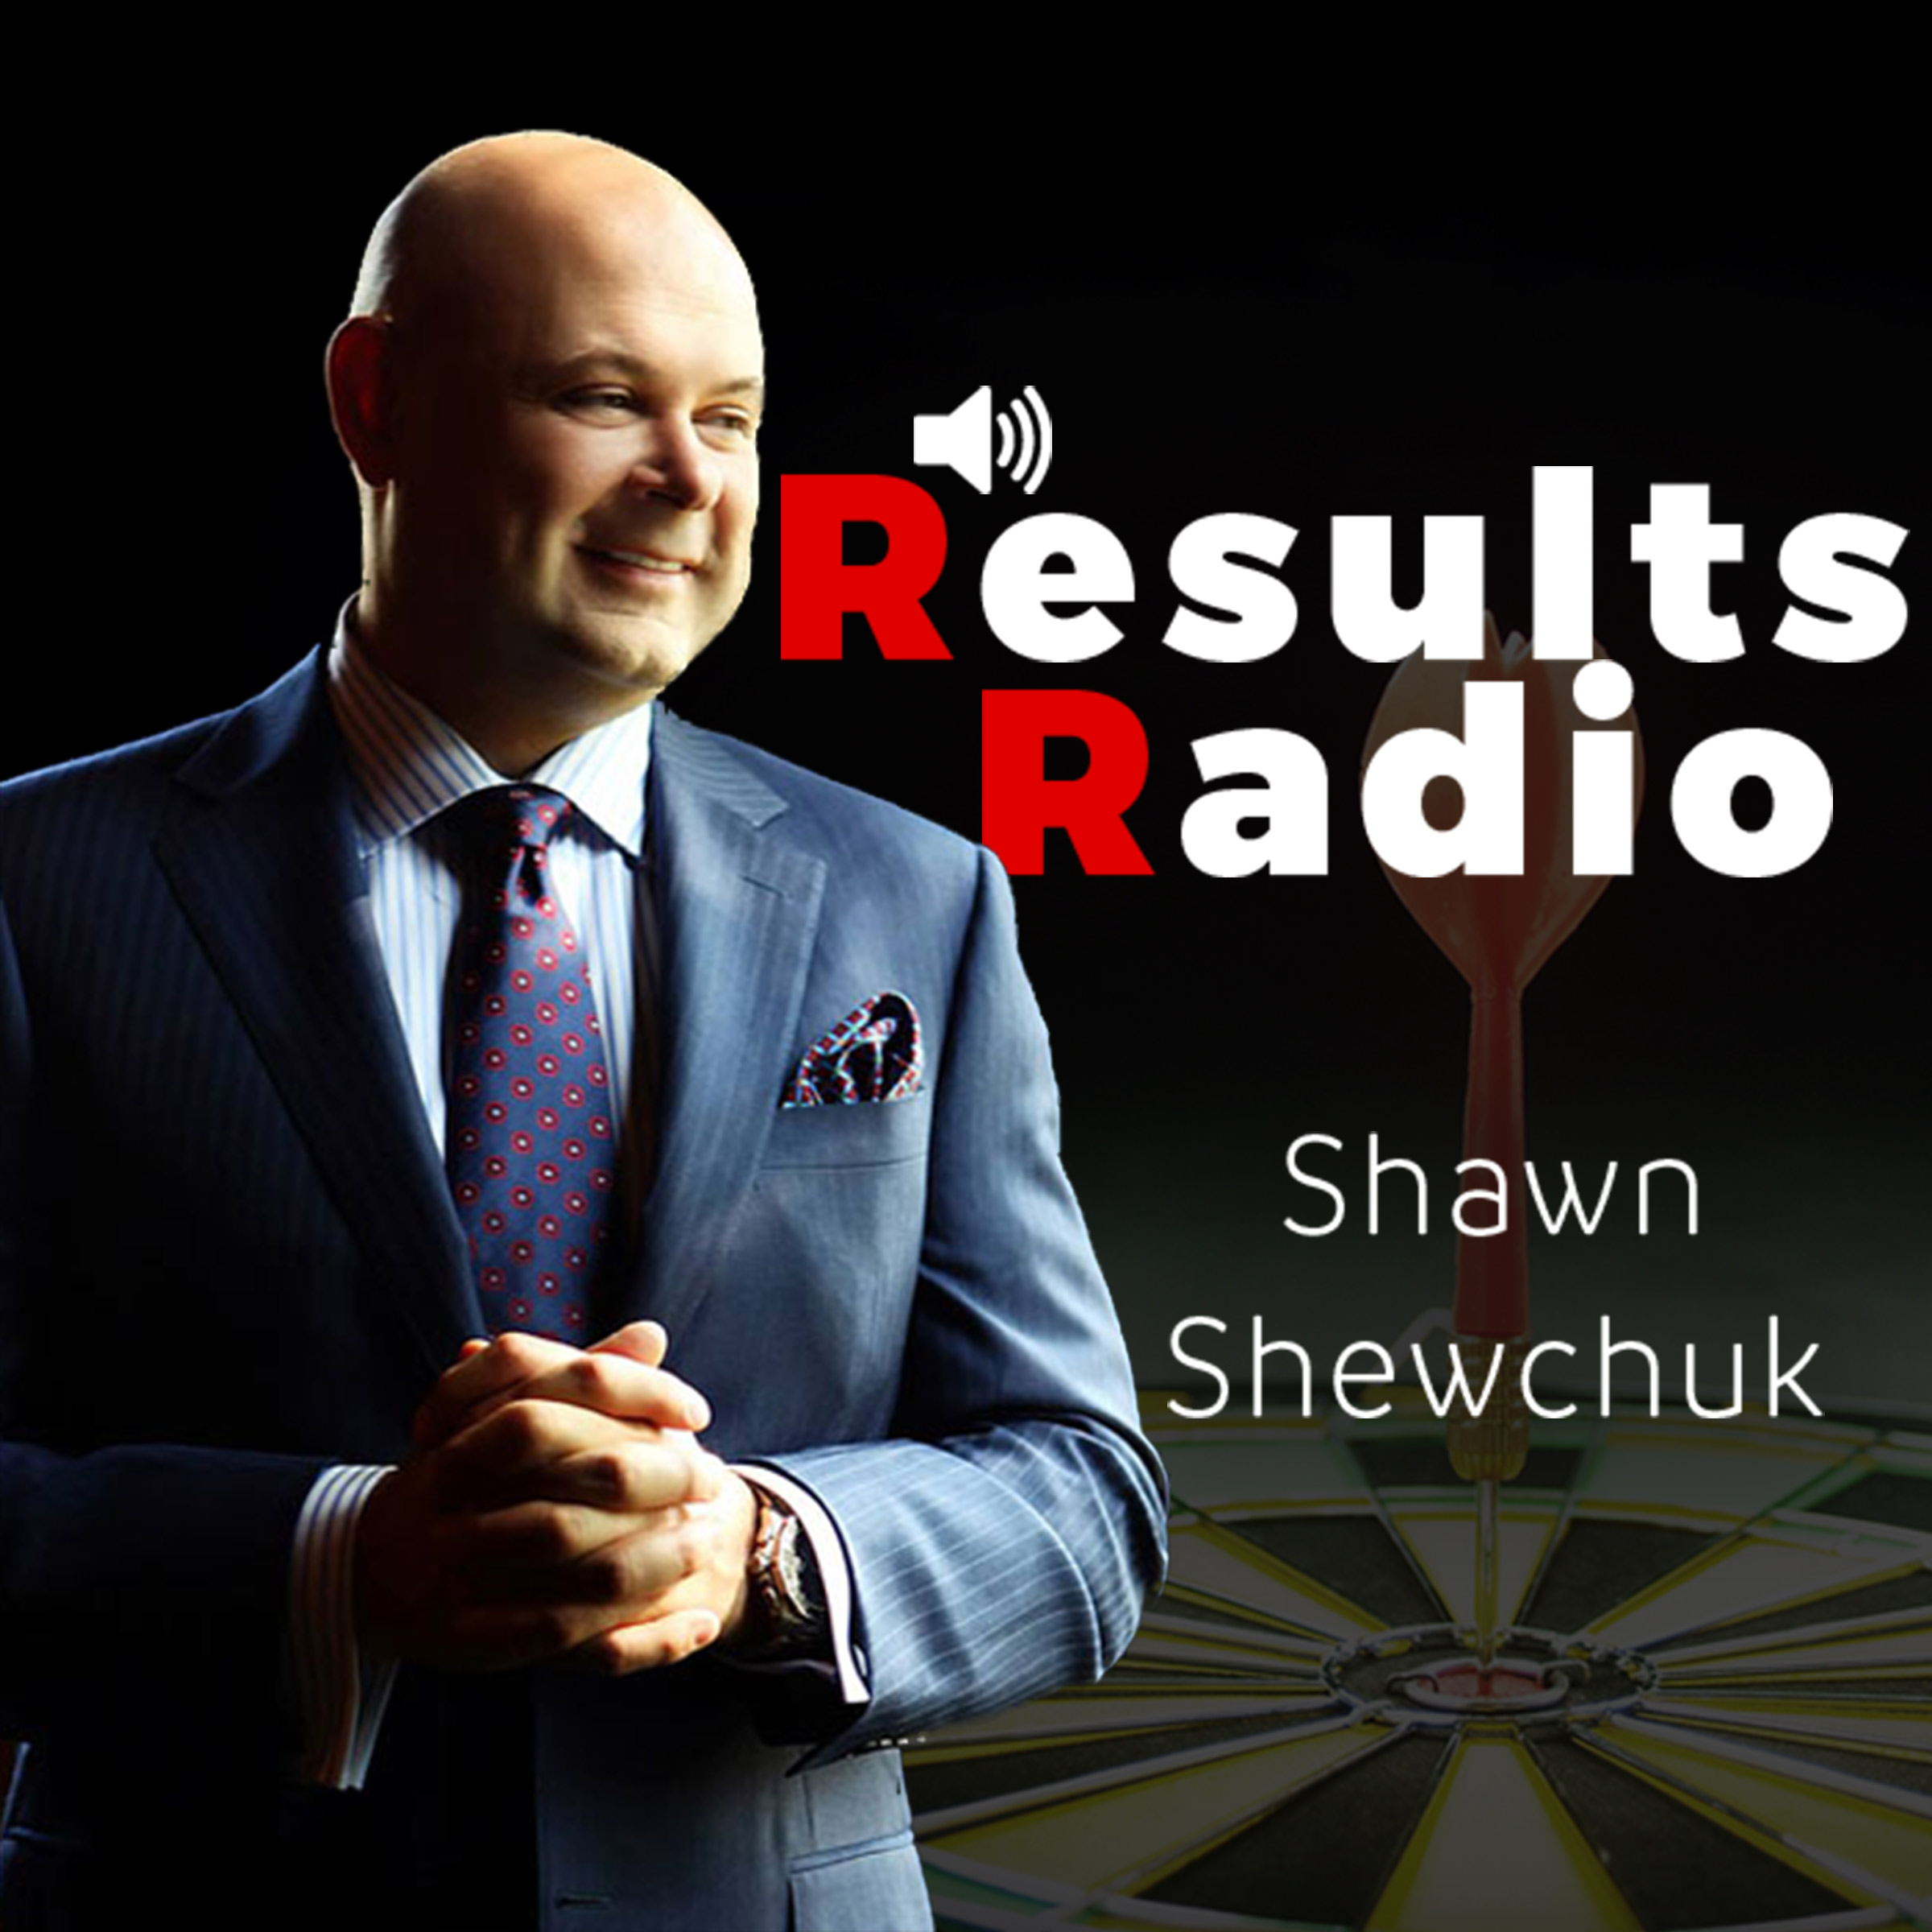 Results Radio with Shawn Shewchuk show art